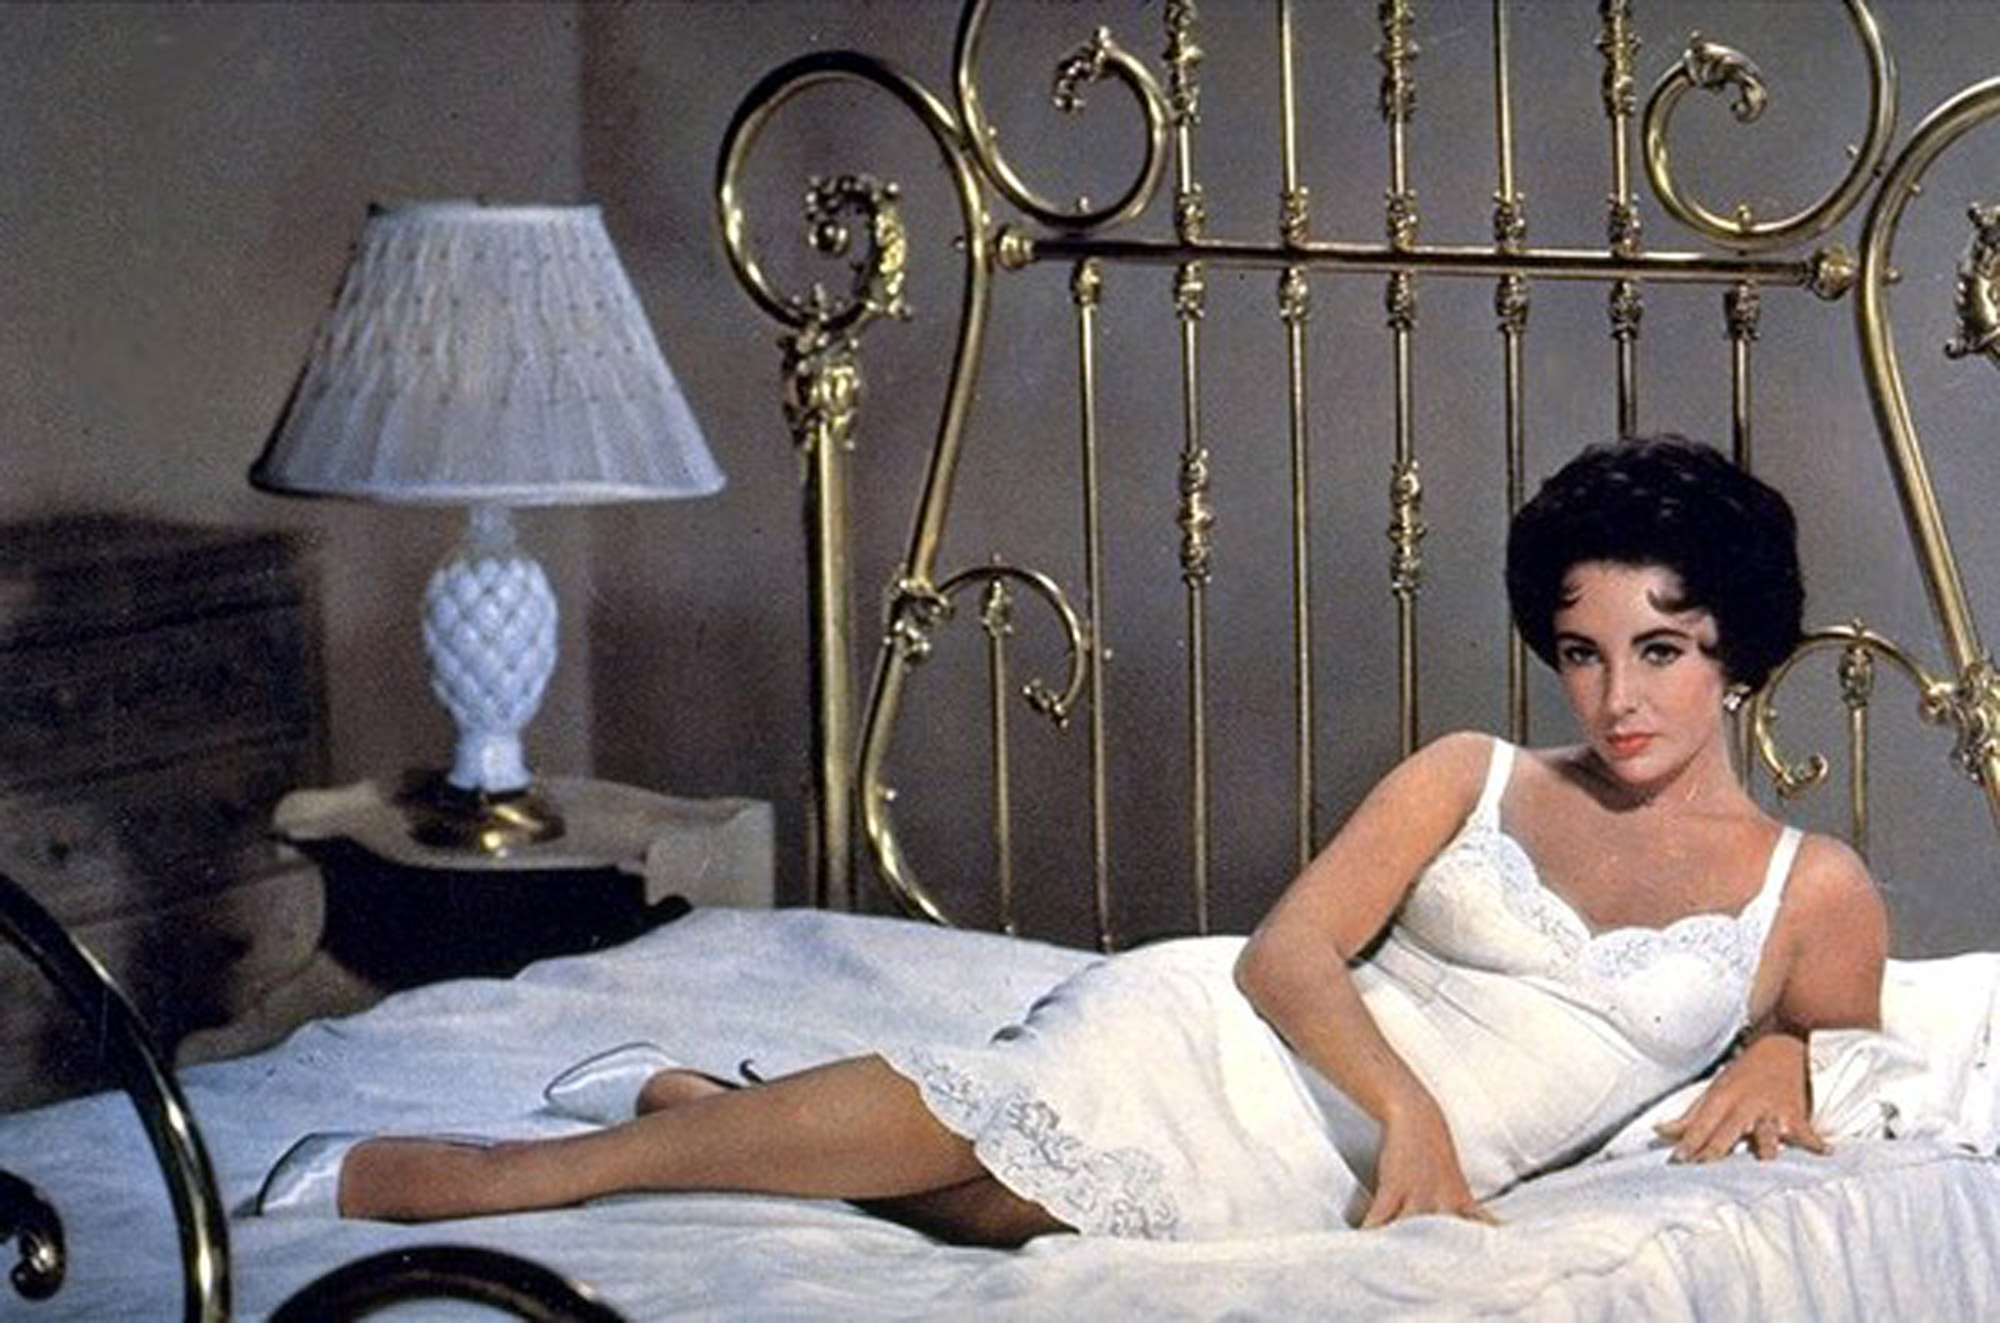 Monday Night Movie Cat On A Hot Tin Roof The Ringling